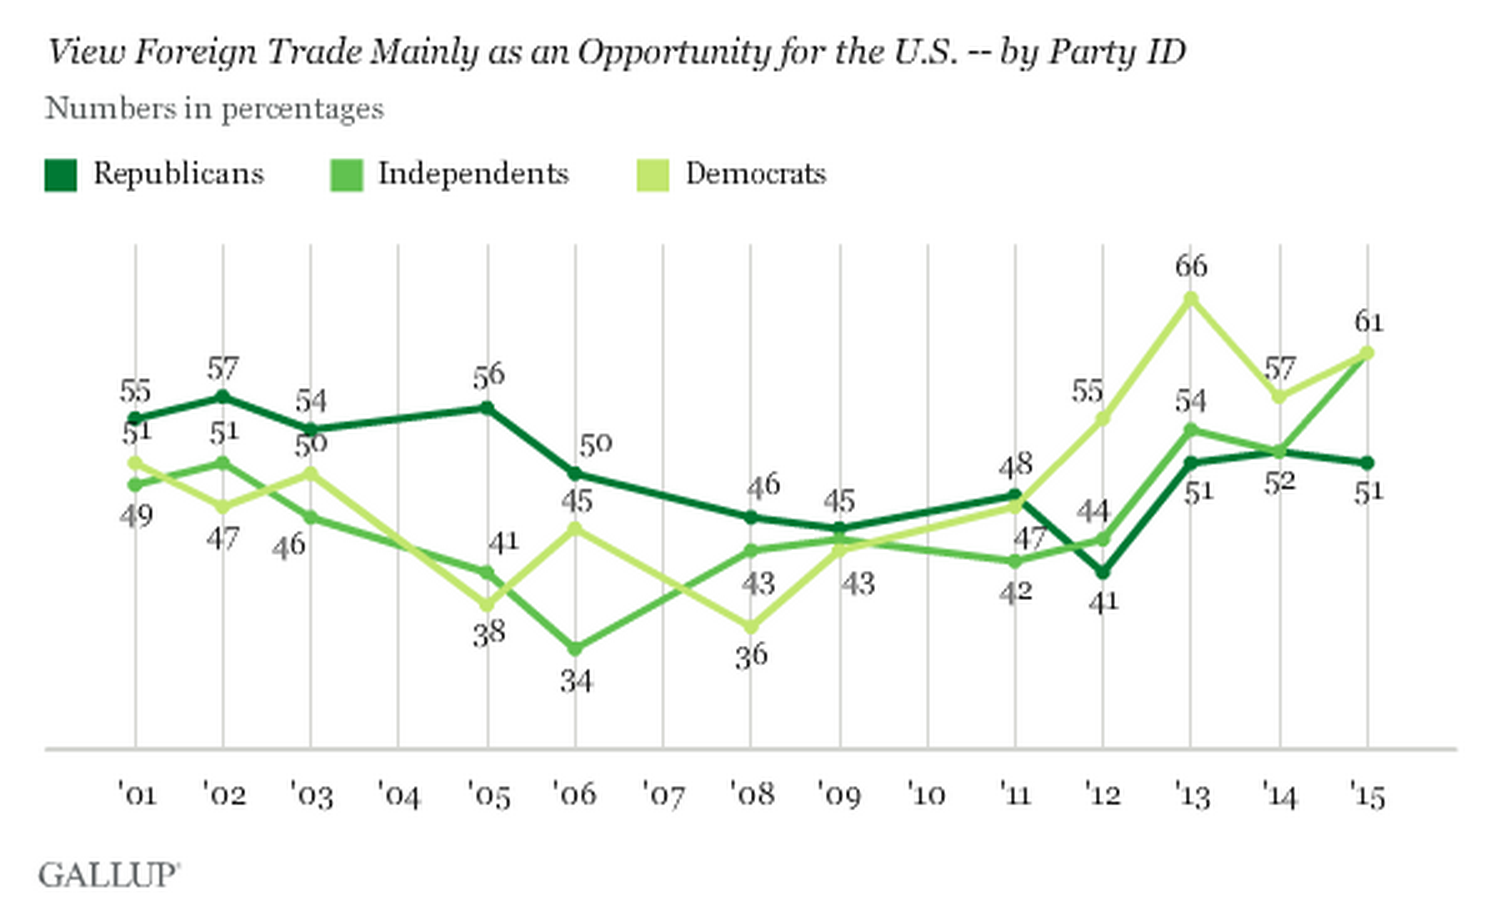 A majority of Democrats (61%) continue to view foreign trade as an opportunity for the U.S. economy, according to the Gallup Poll.